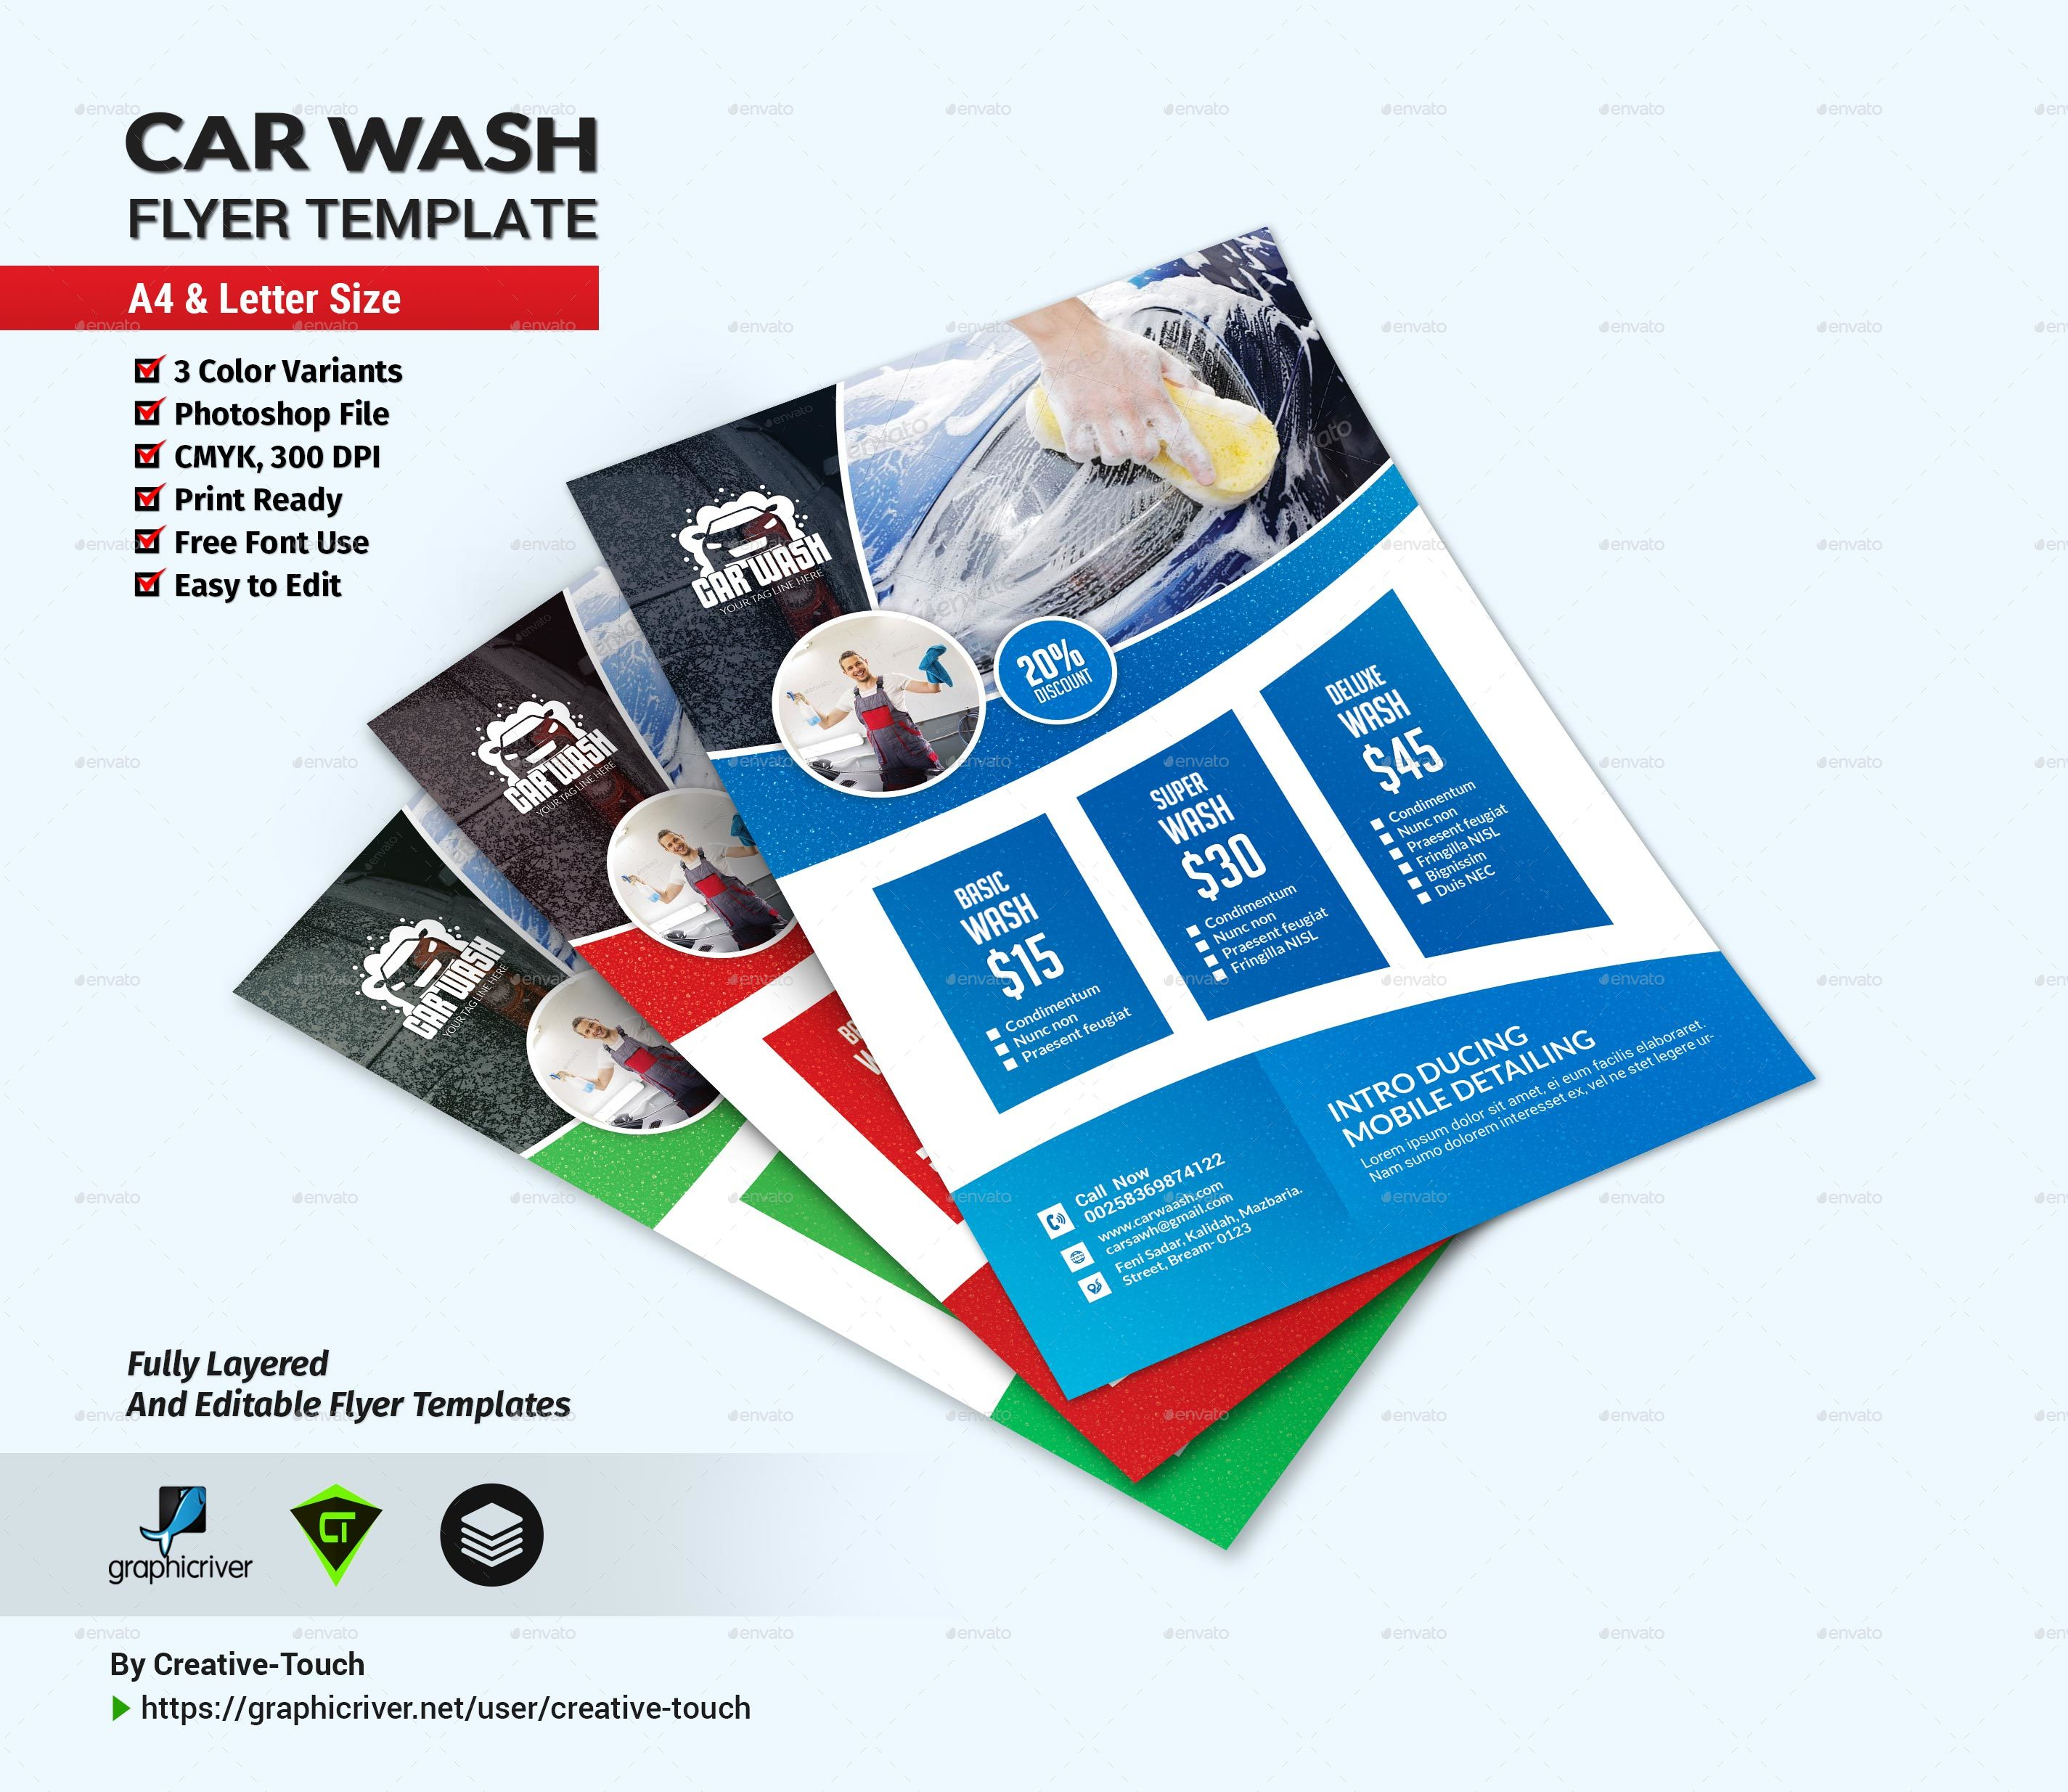 Car Wash Flyer Template by Creative-Touch | GraphicRiver